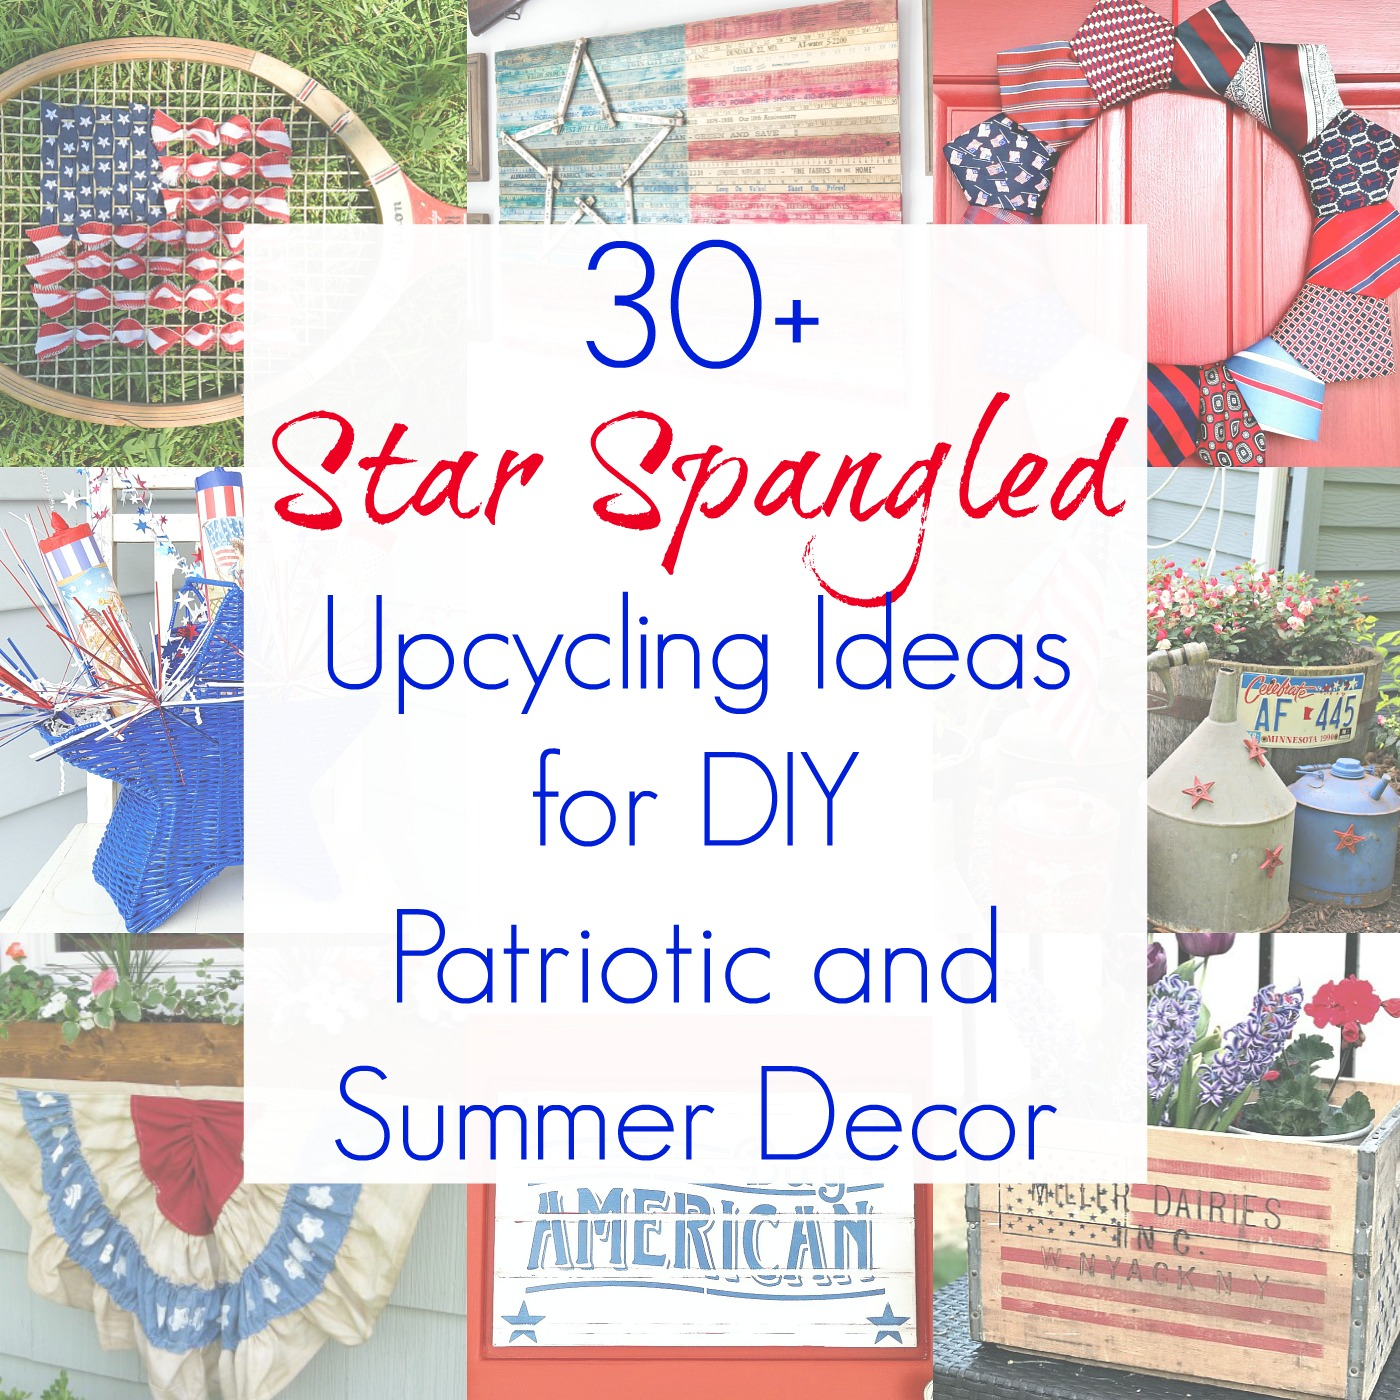 30+ Upcycling Ideas for Patriotic Decor / Independence Day Decorations